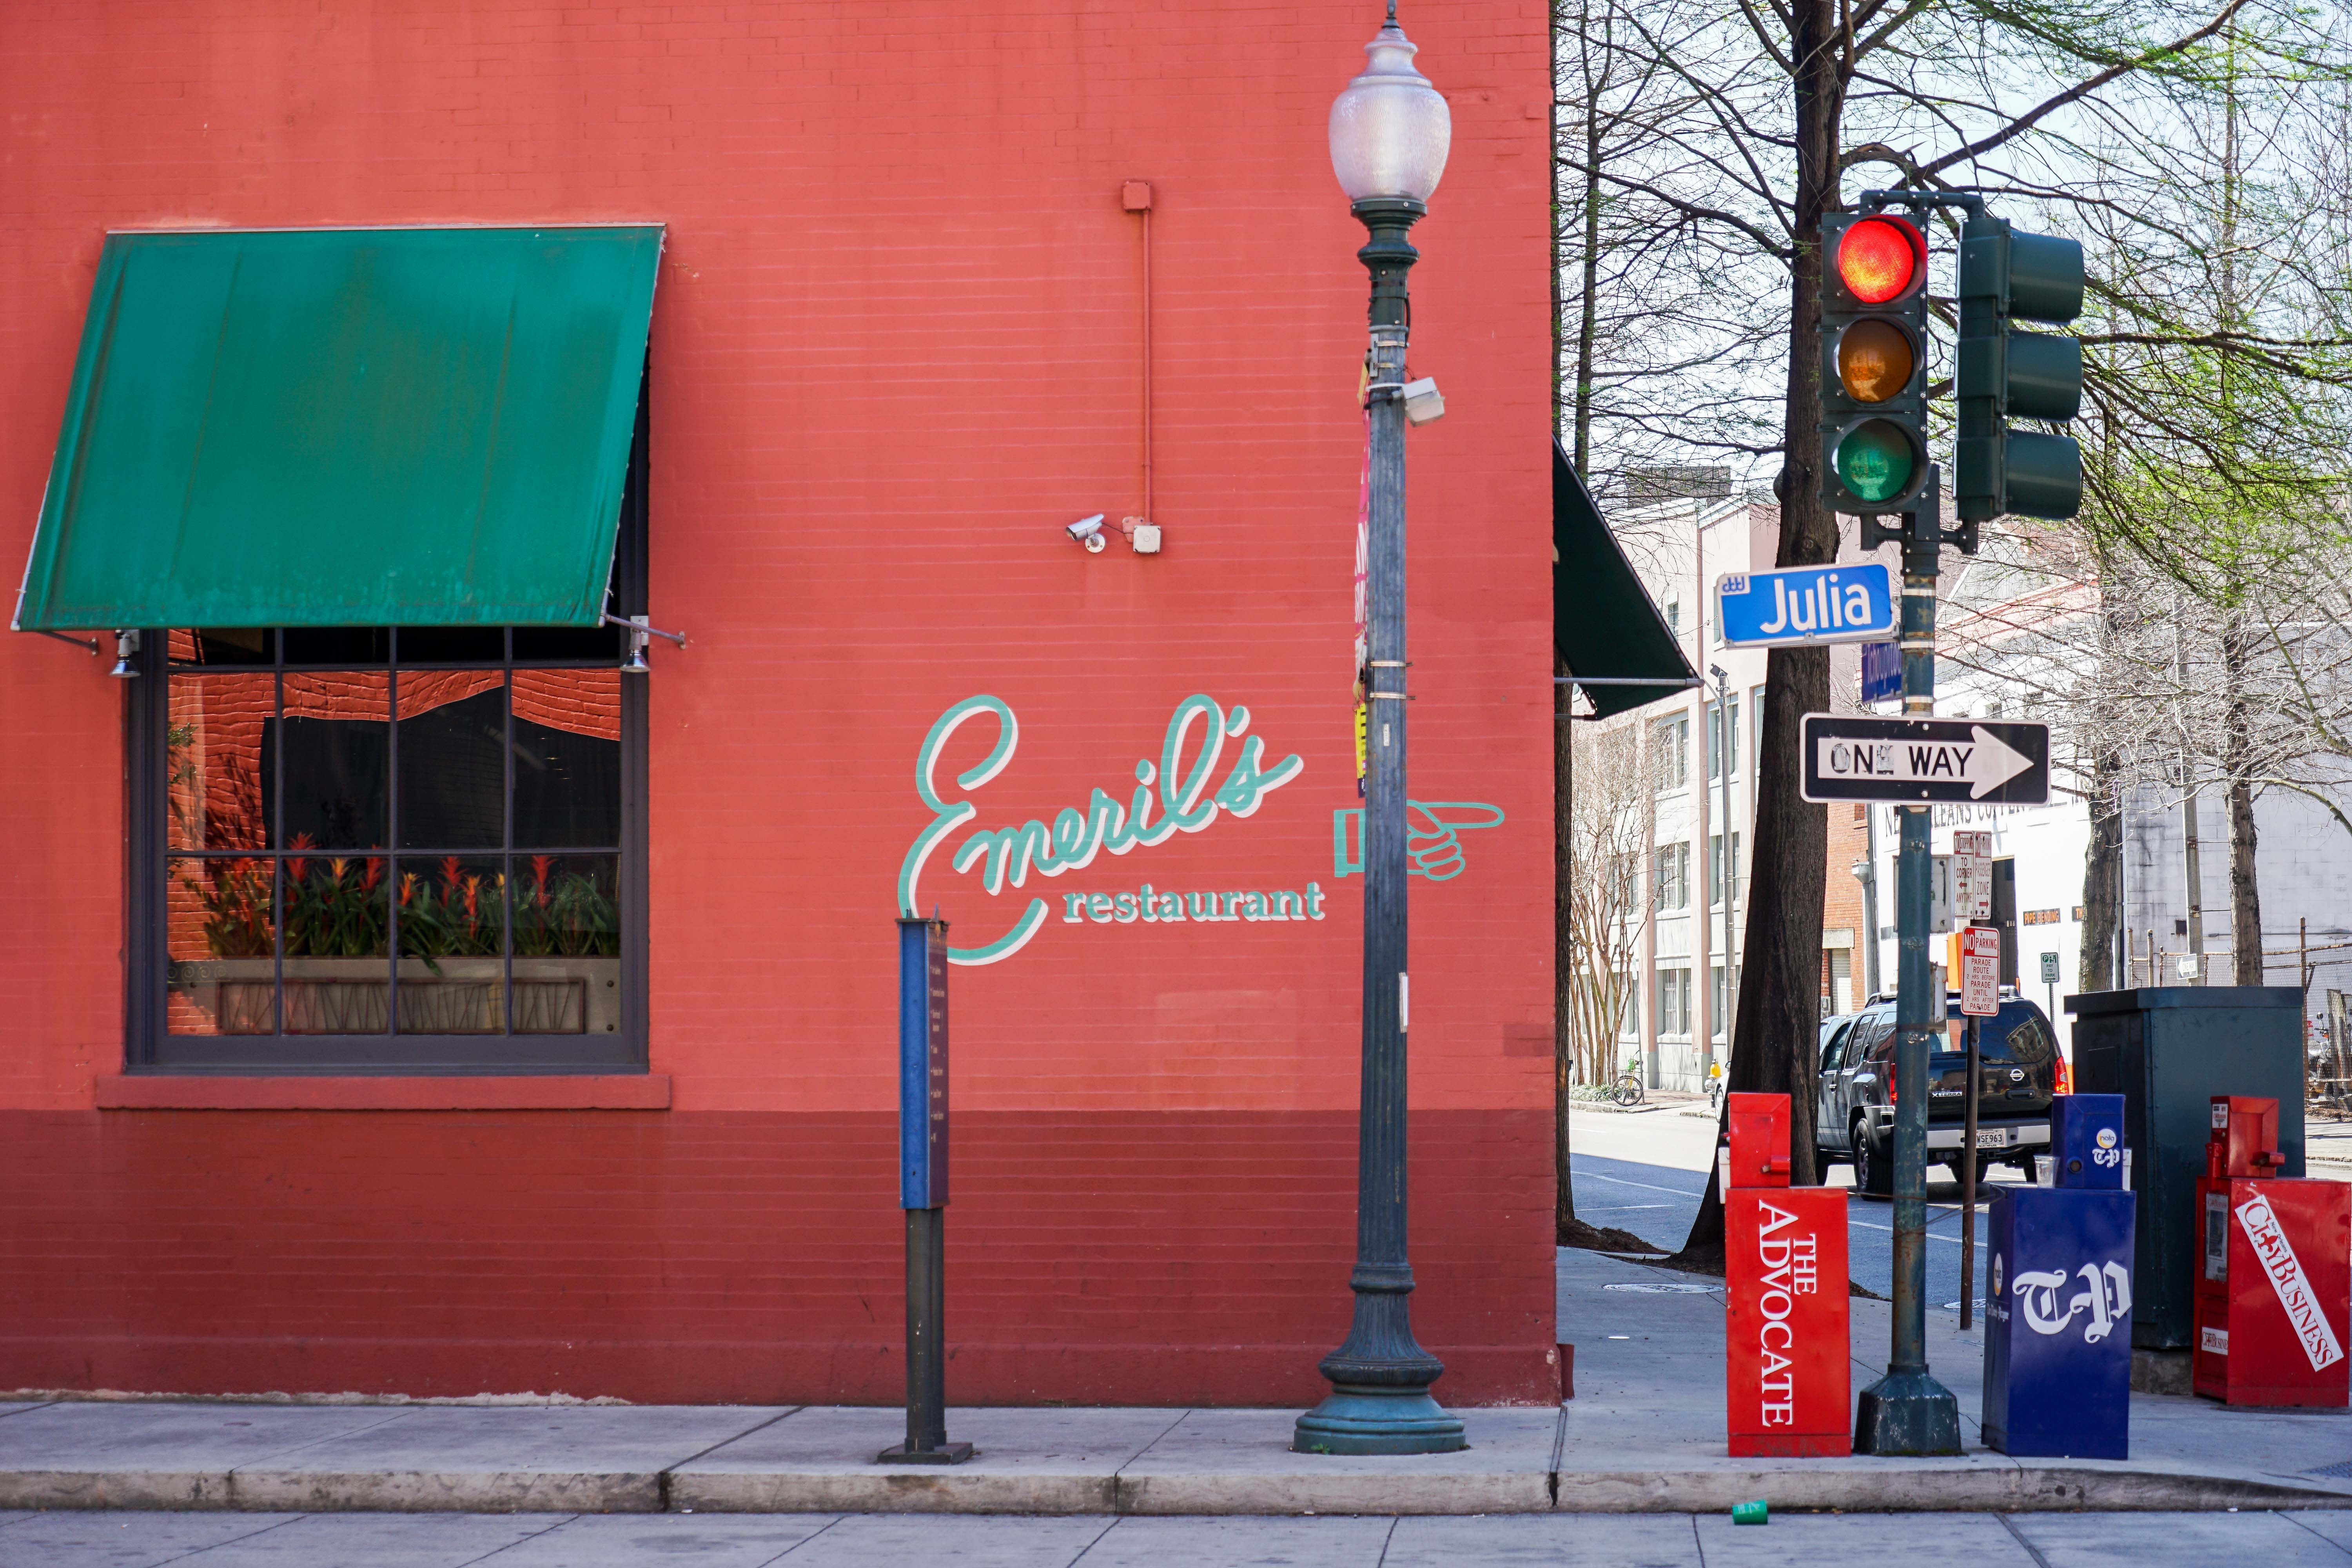 Emeril S Flagship Restaurant In The Warehouse District Has Been Wowing Locals And Tourists Alike With Gracious